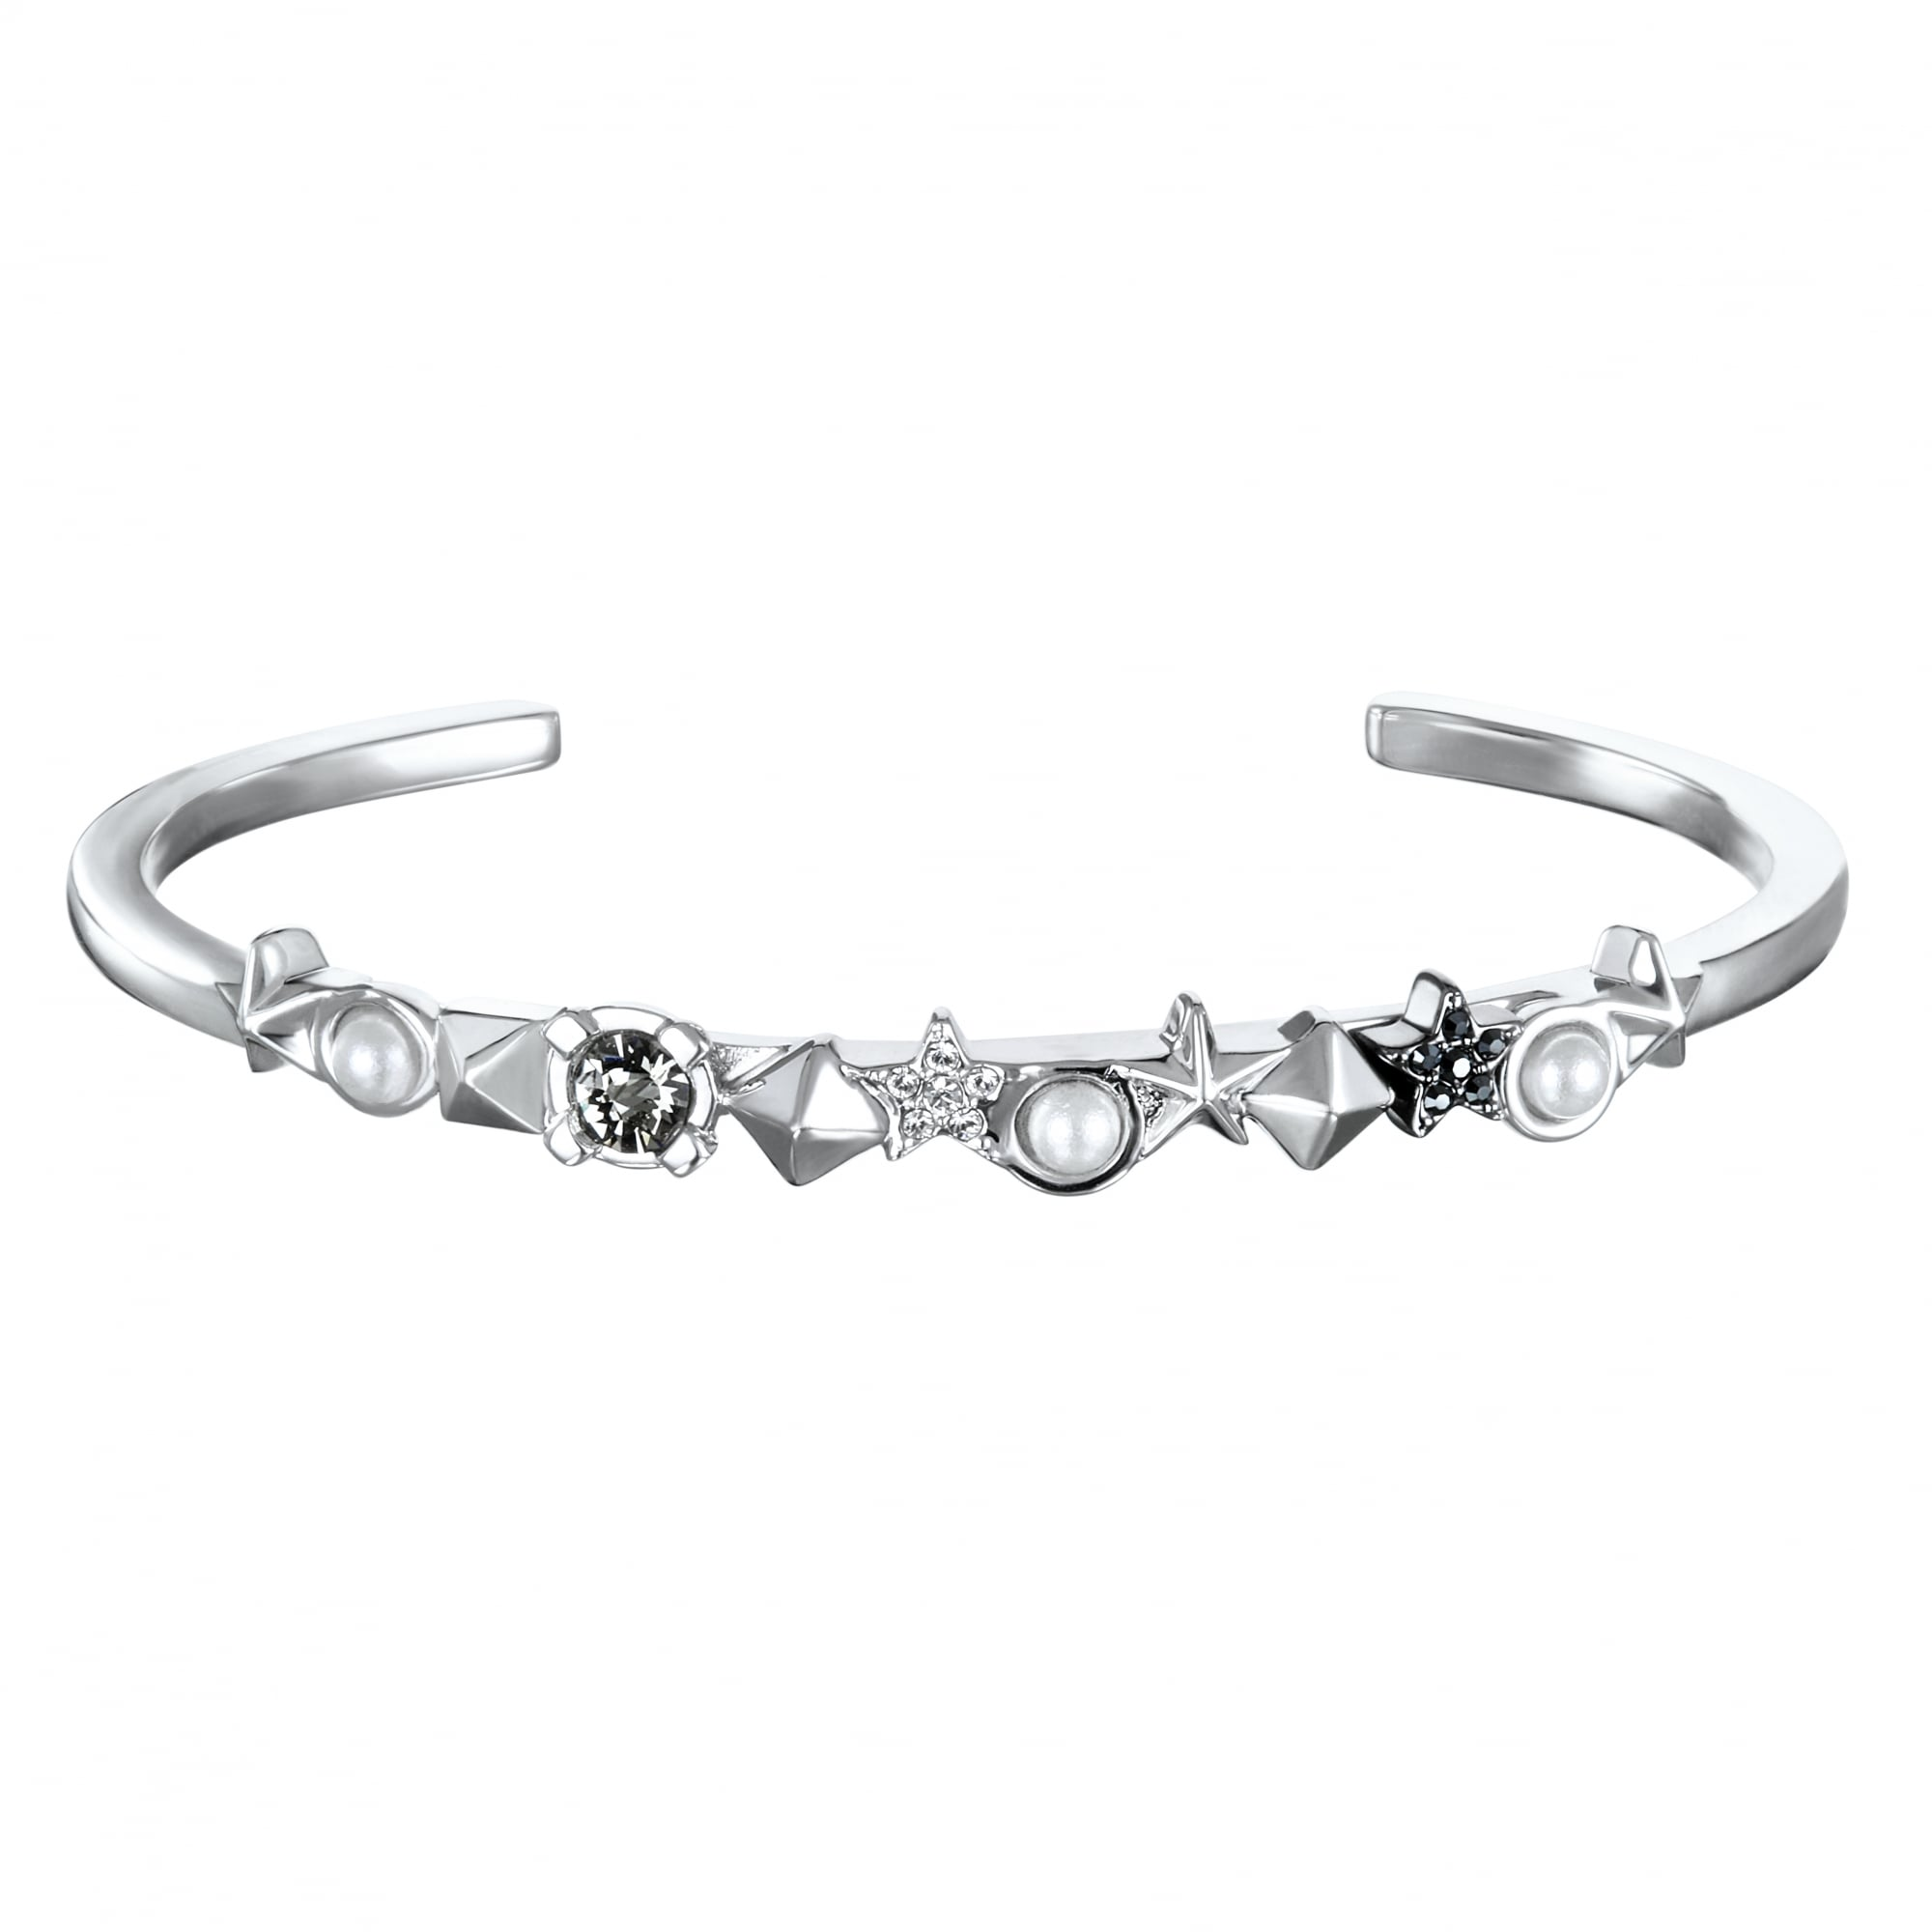 Karl Lagerfeld Silver Star And Stud Bar Cuff Bracelet Created With Swarovski Crystals